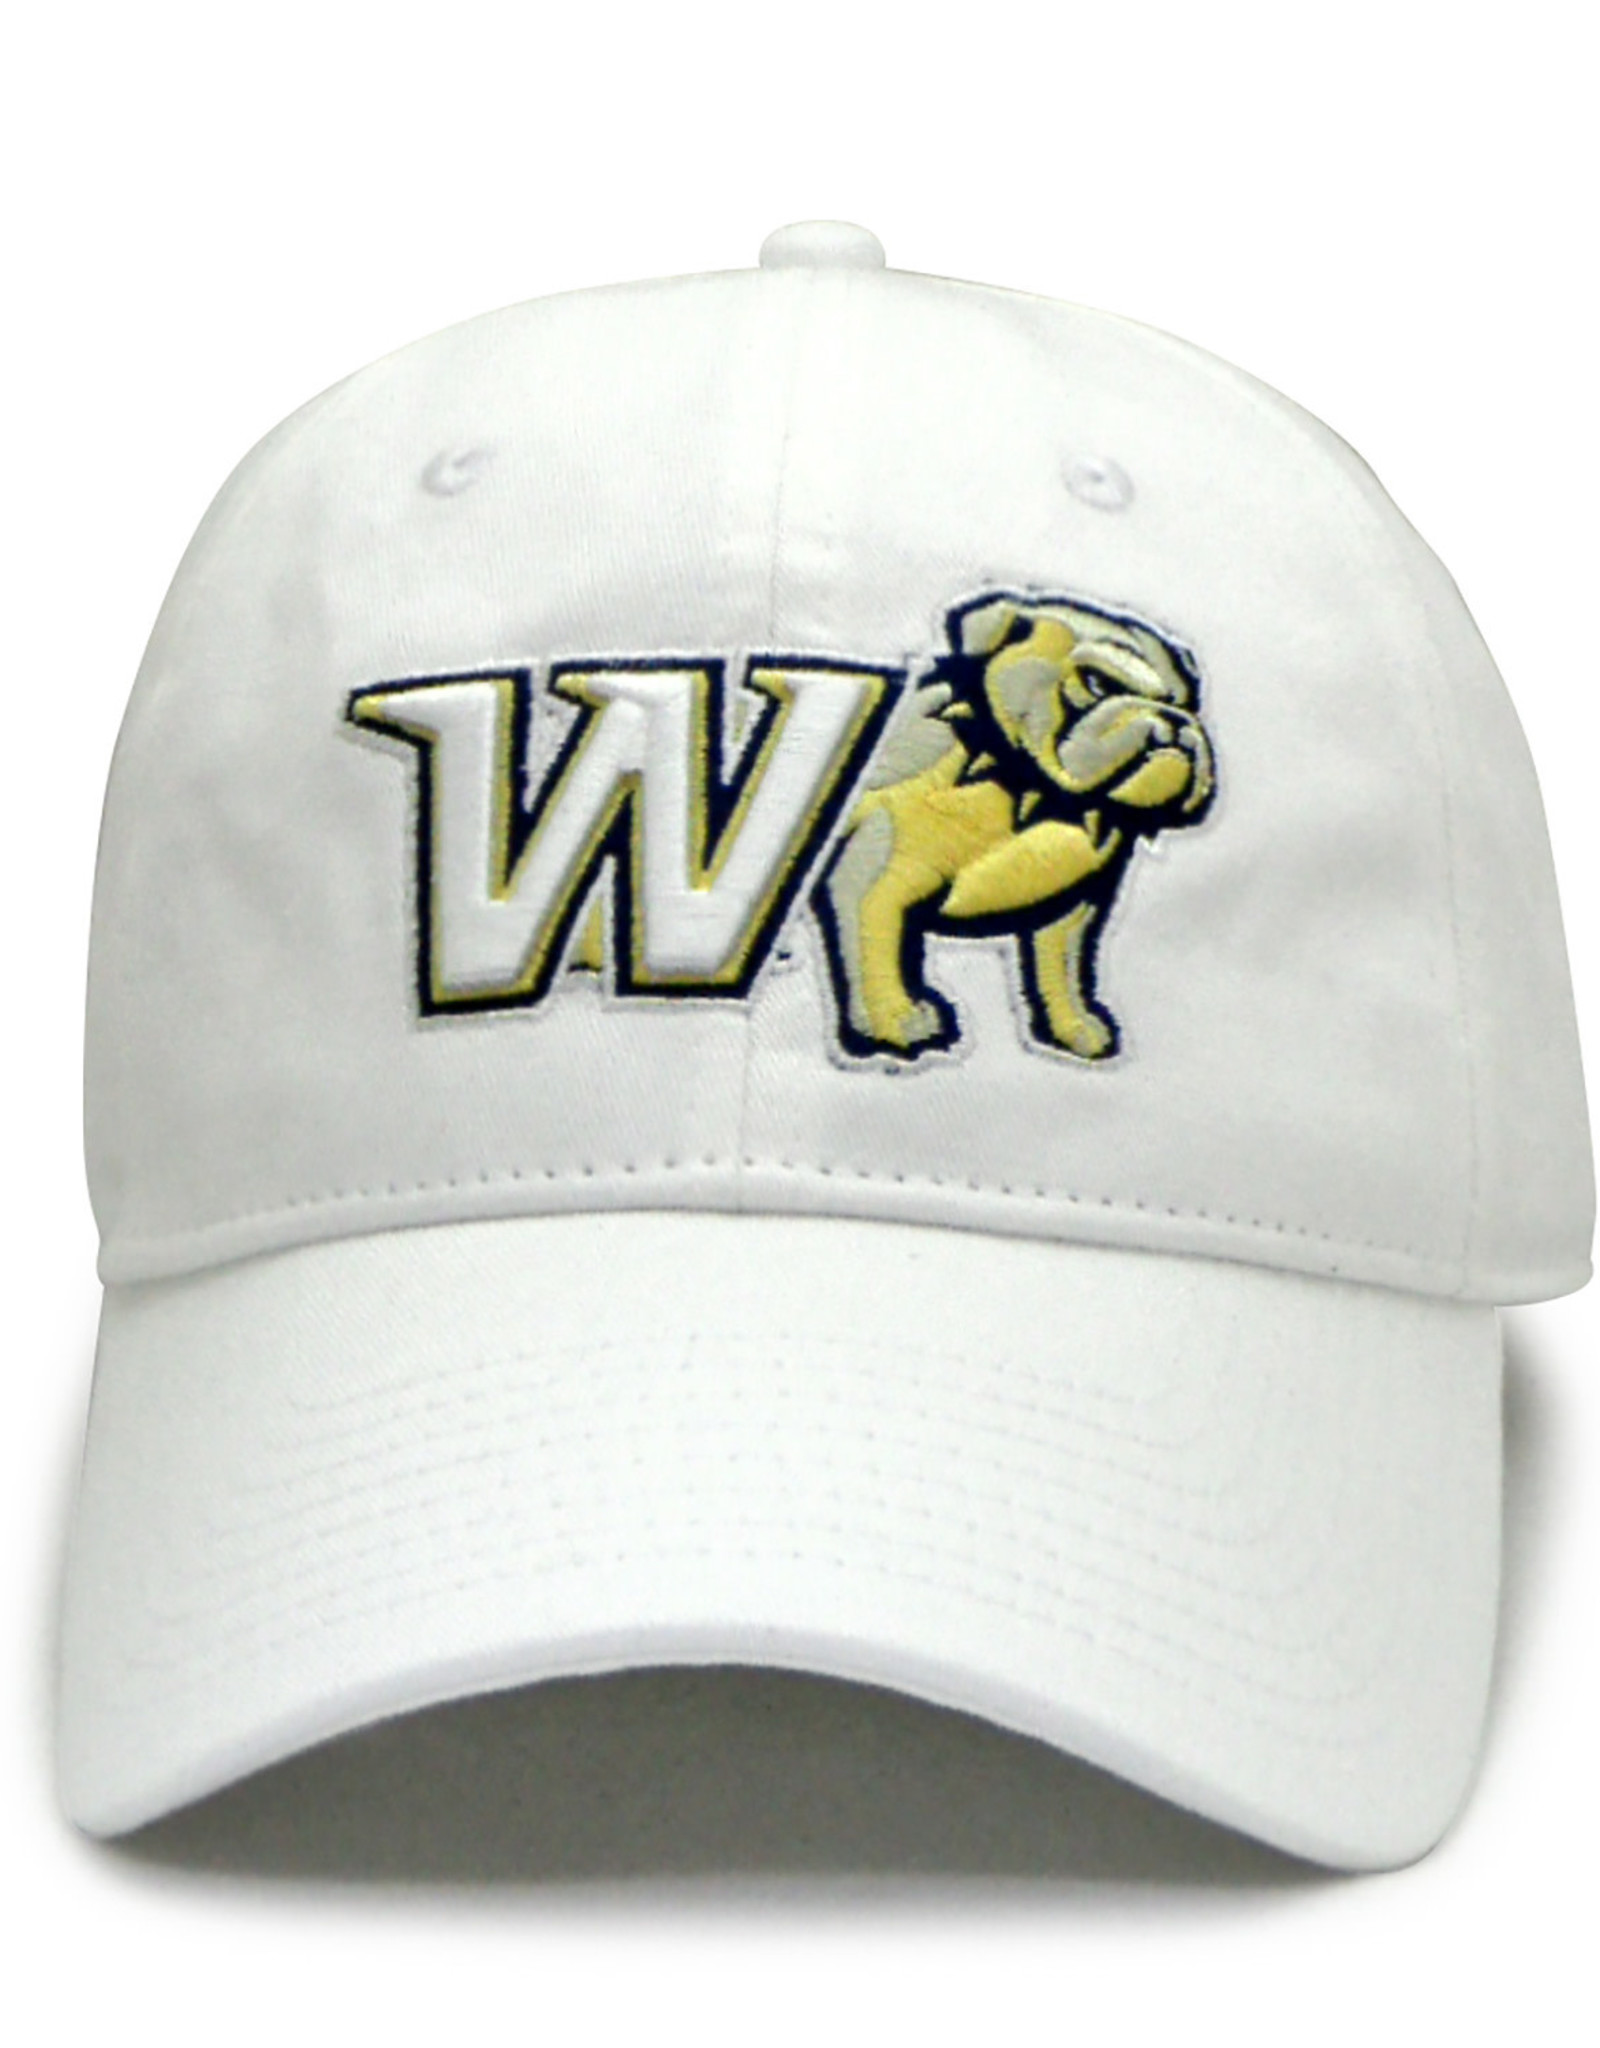 The Game White Adjustable New W Half Dog Unstructured Hat